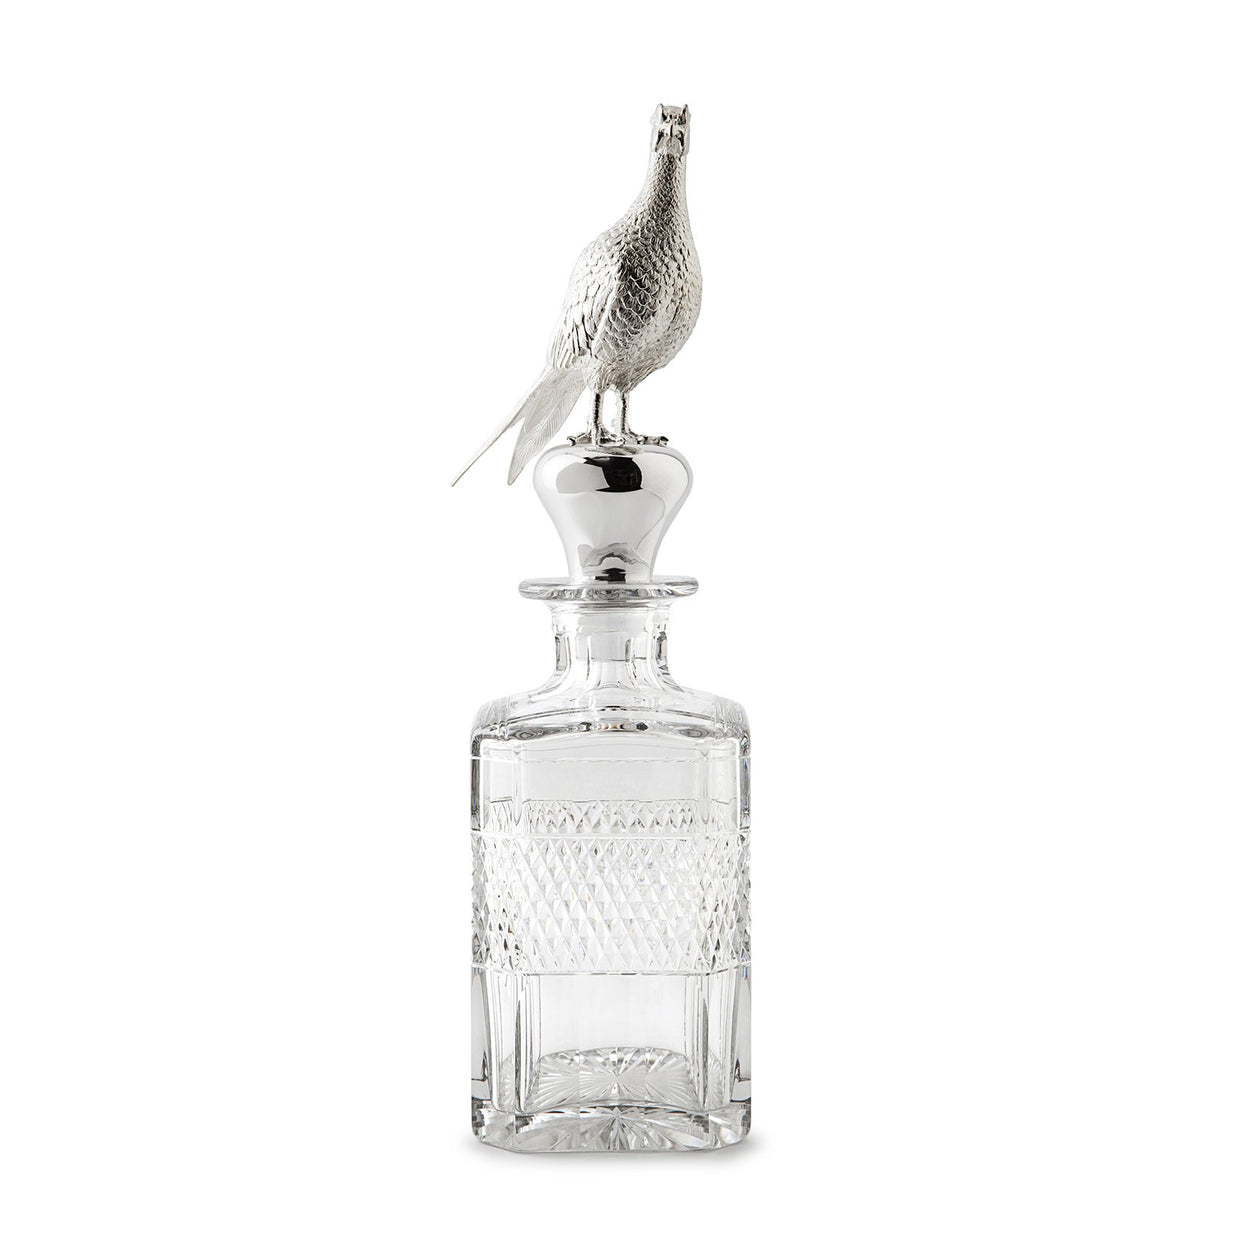 Britannia Silver Mounted 'Pheasant' Grasmere Cut Spirit Decanter - Hamilton & Inches